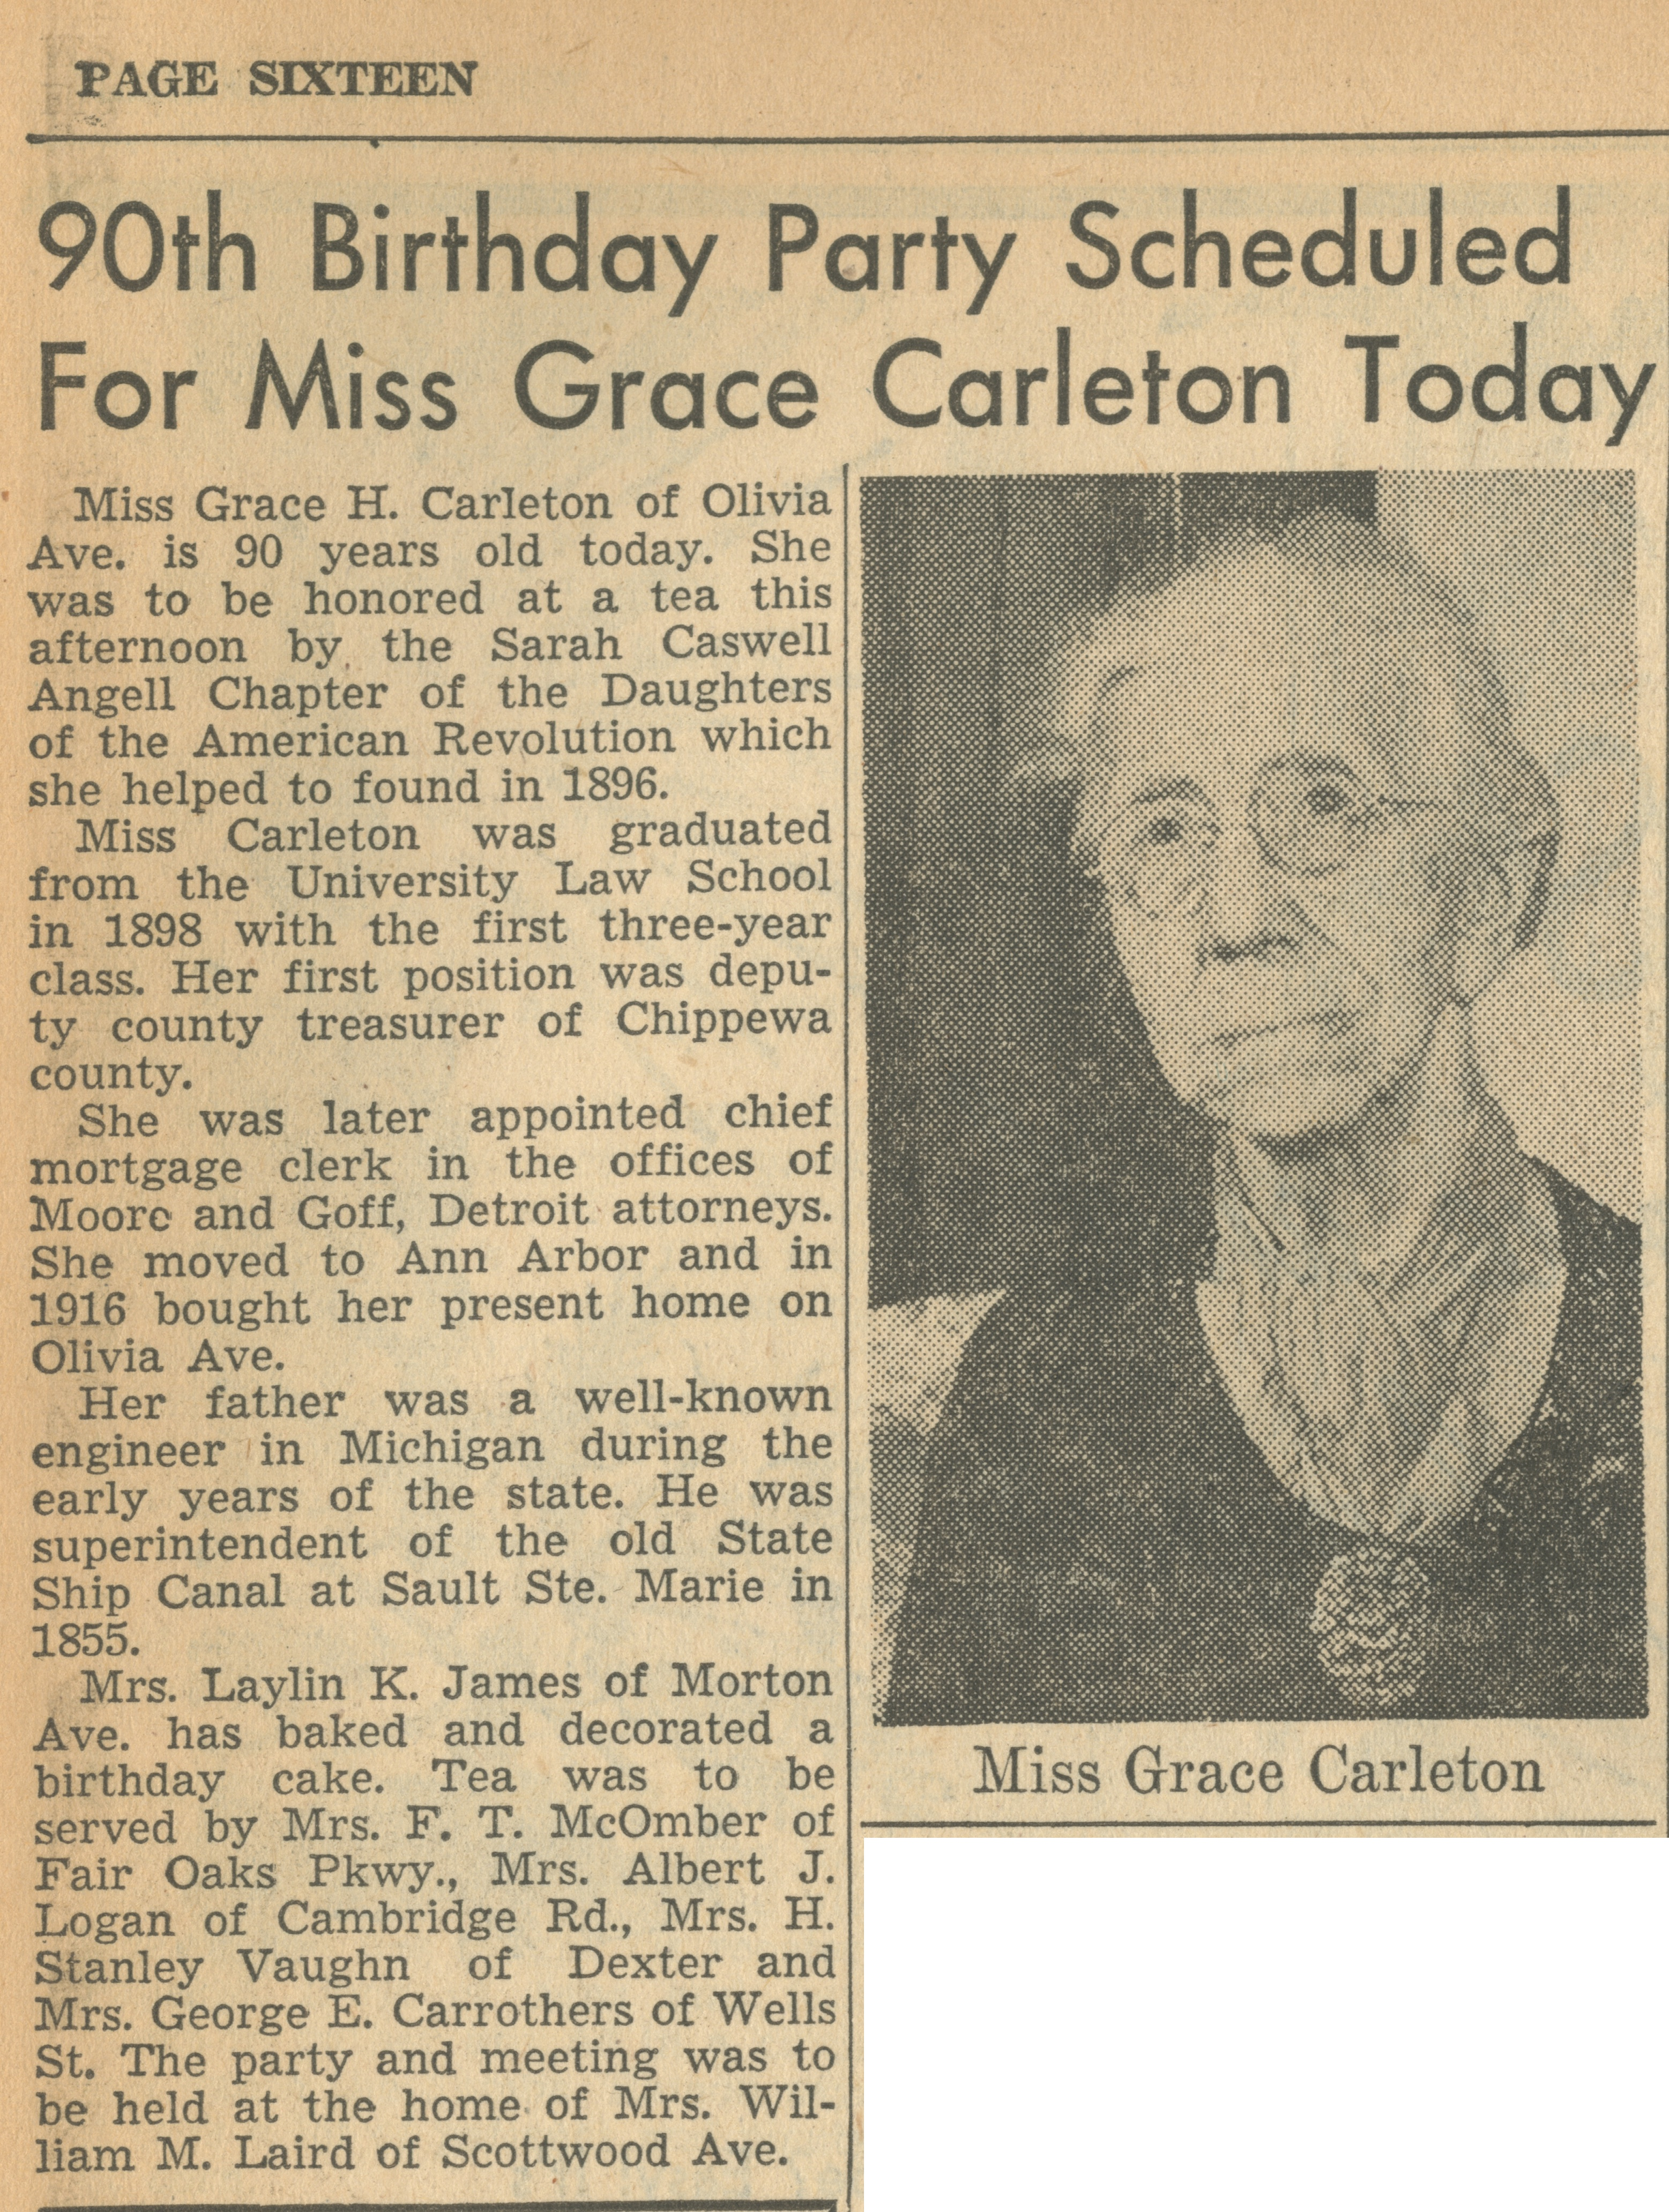 90th Birthday Party Scheduled For Miss Grace Carleton Today image